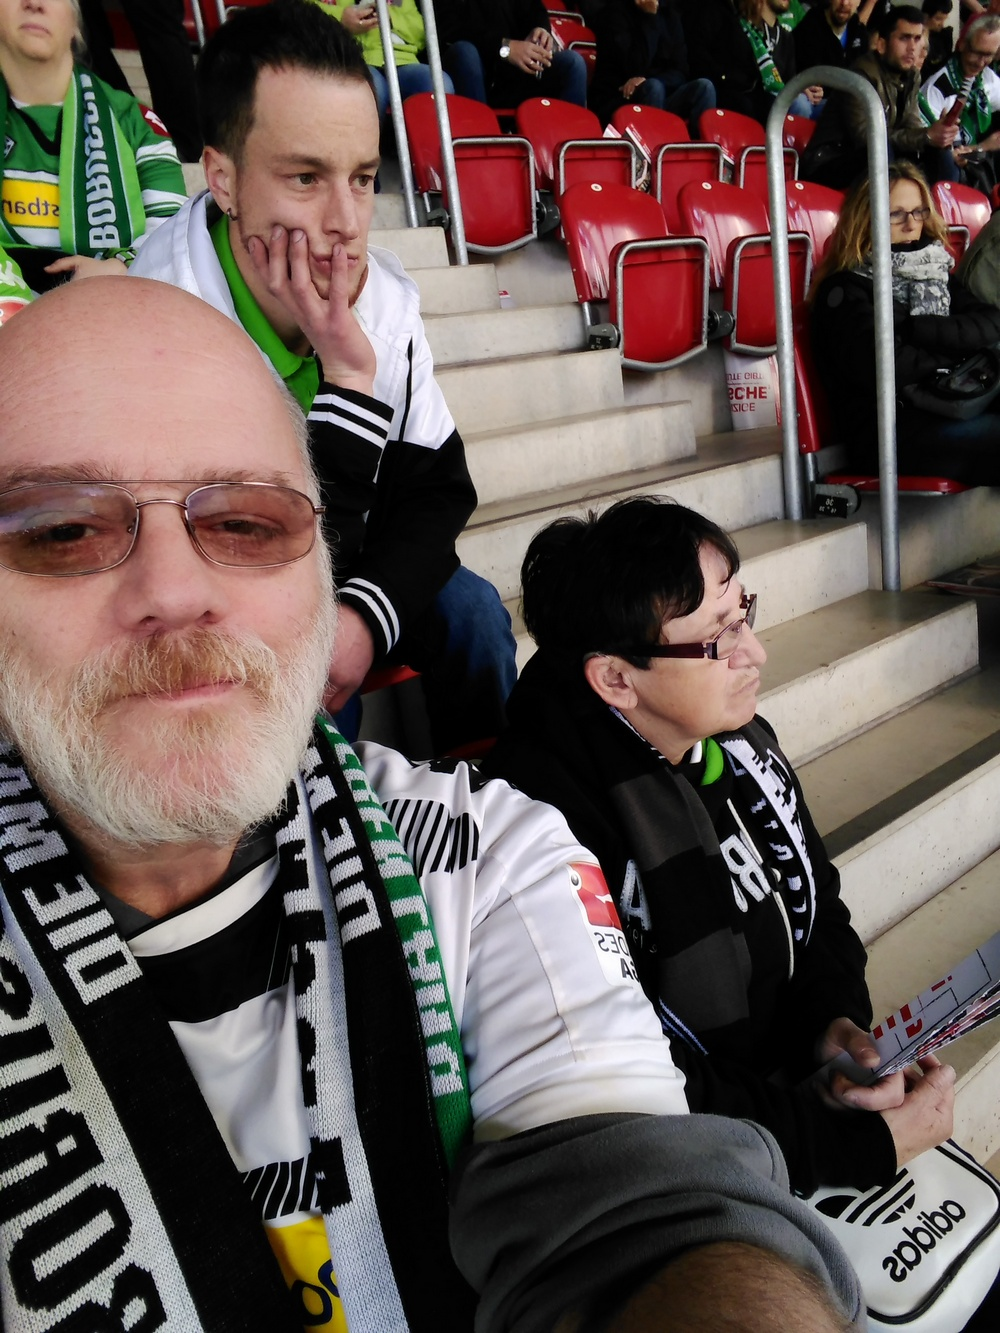 Rautenexpress Mainz Tour 29.4.2017